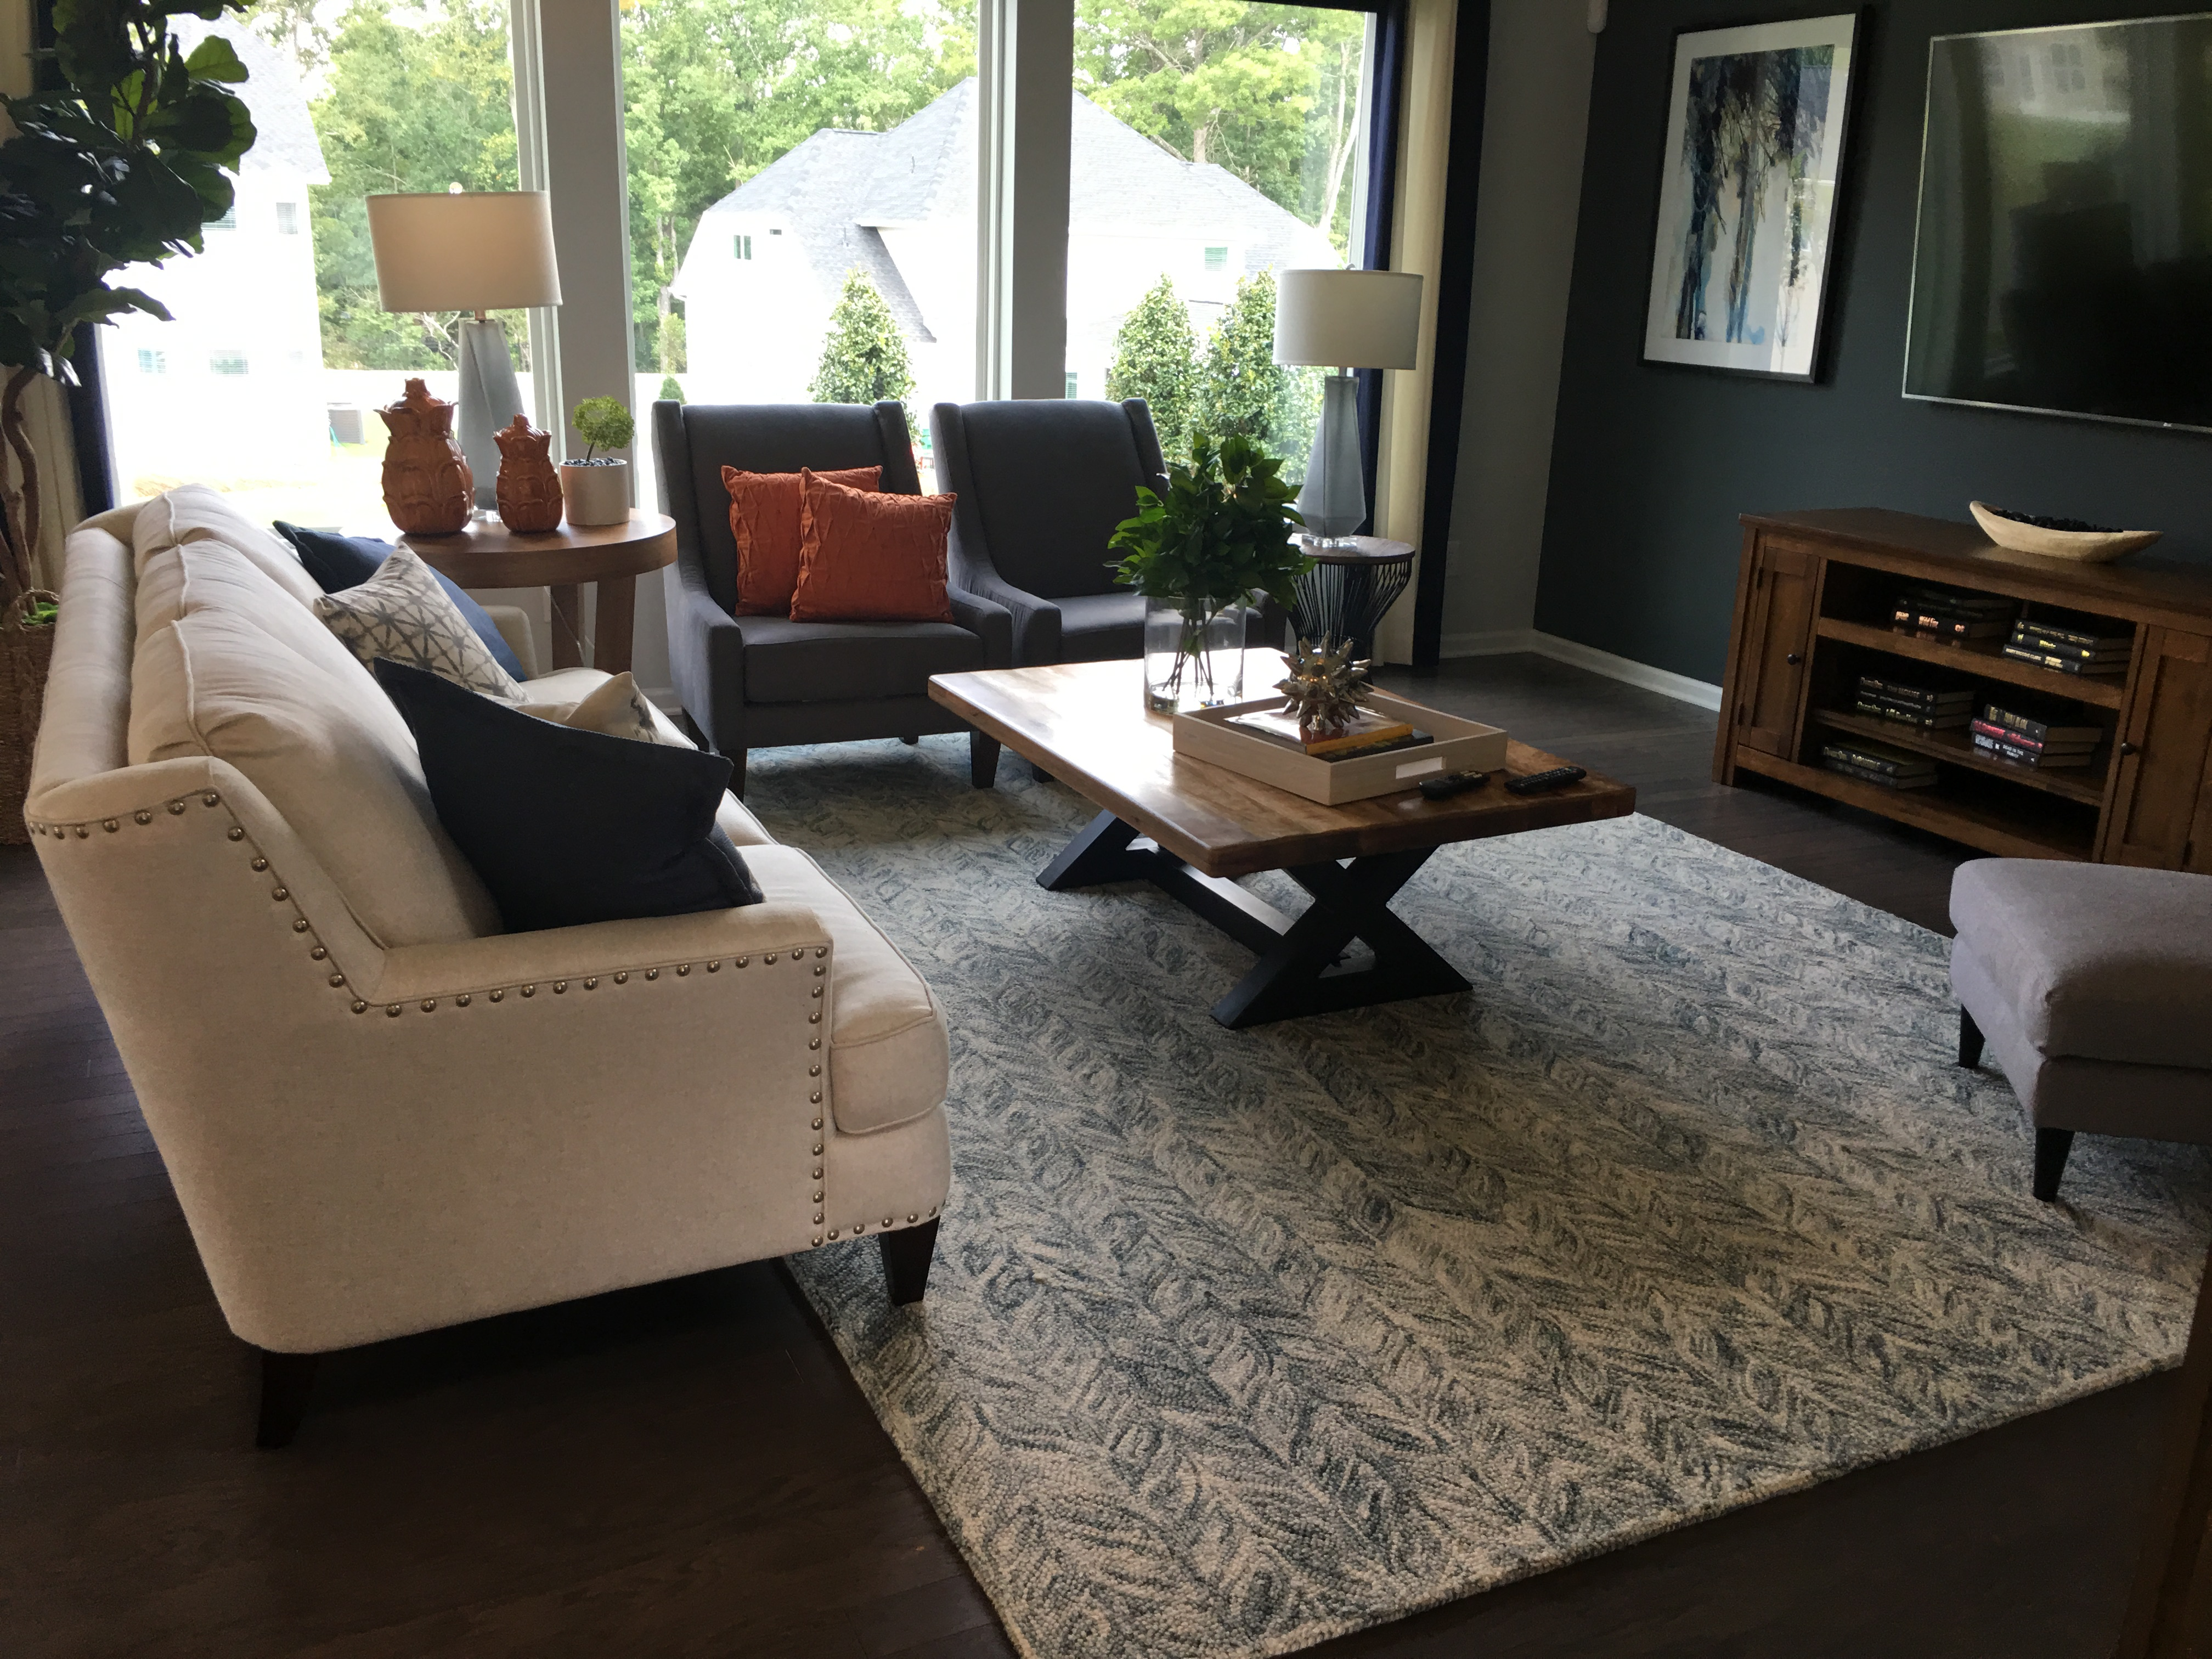 New Home Community in <a href='https://joetta.trihomesforsale.com/index.php?types[]=1&types[]=2&areas[]=city:Fort Mill&beds=0&baths=0&min=0&max=100000000&map=0&quick=1&submit=Search' title='Search Properties in Fort Mill'>Fort Mill</a>, SC